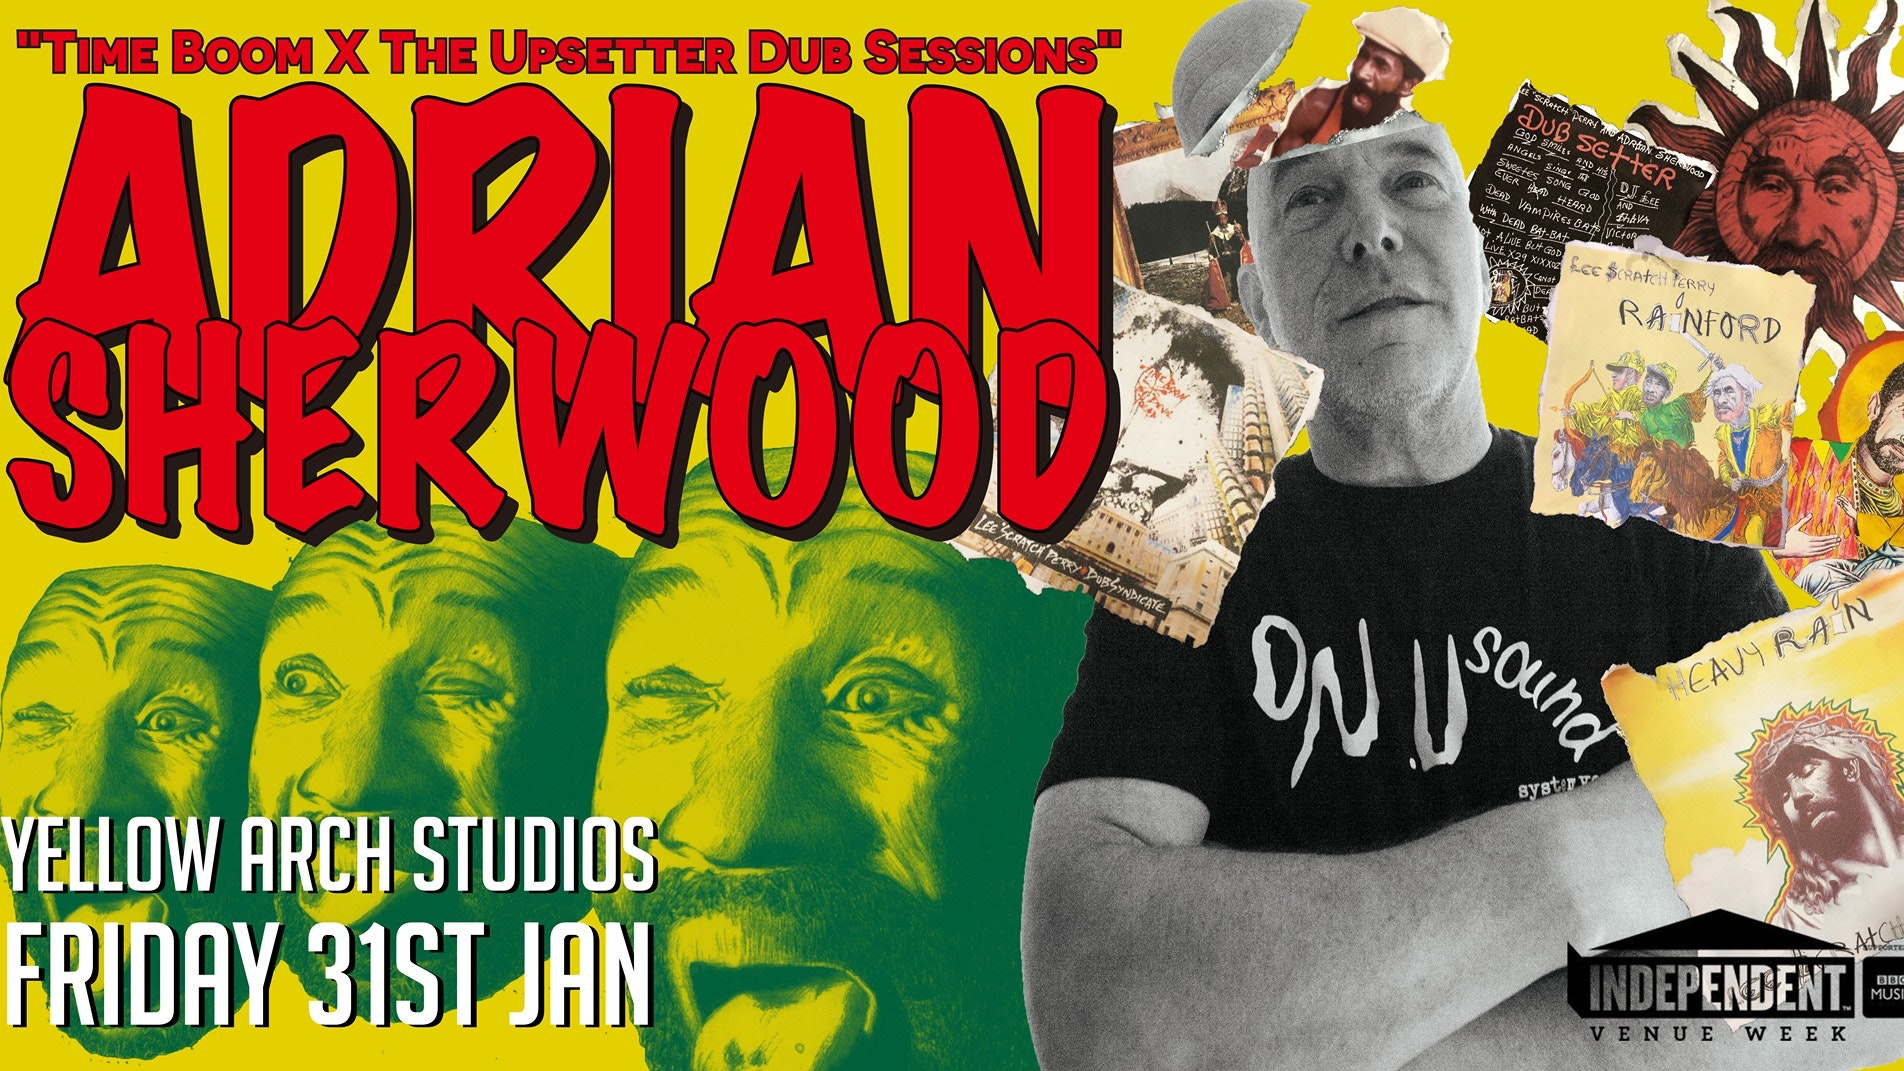 Adrian Sherwood 'Time Boom x The Upsetter Dub Sessions'